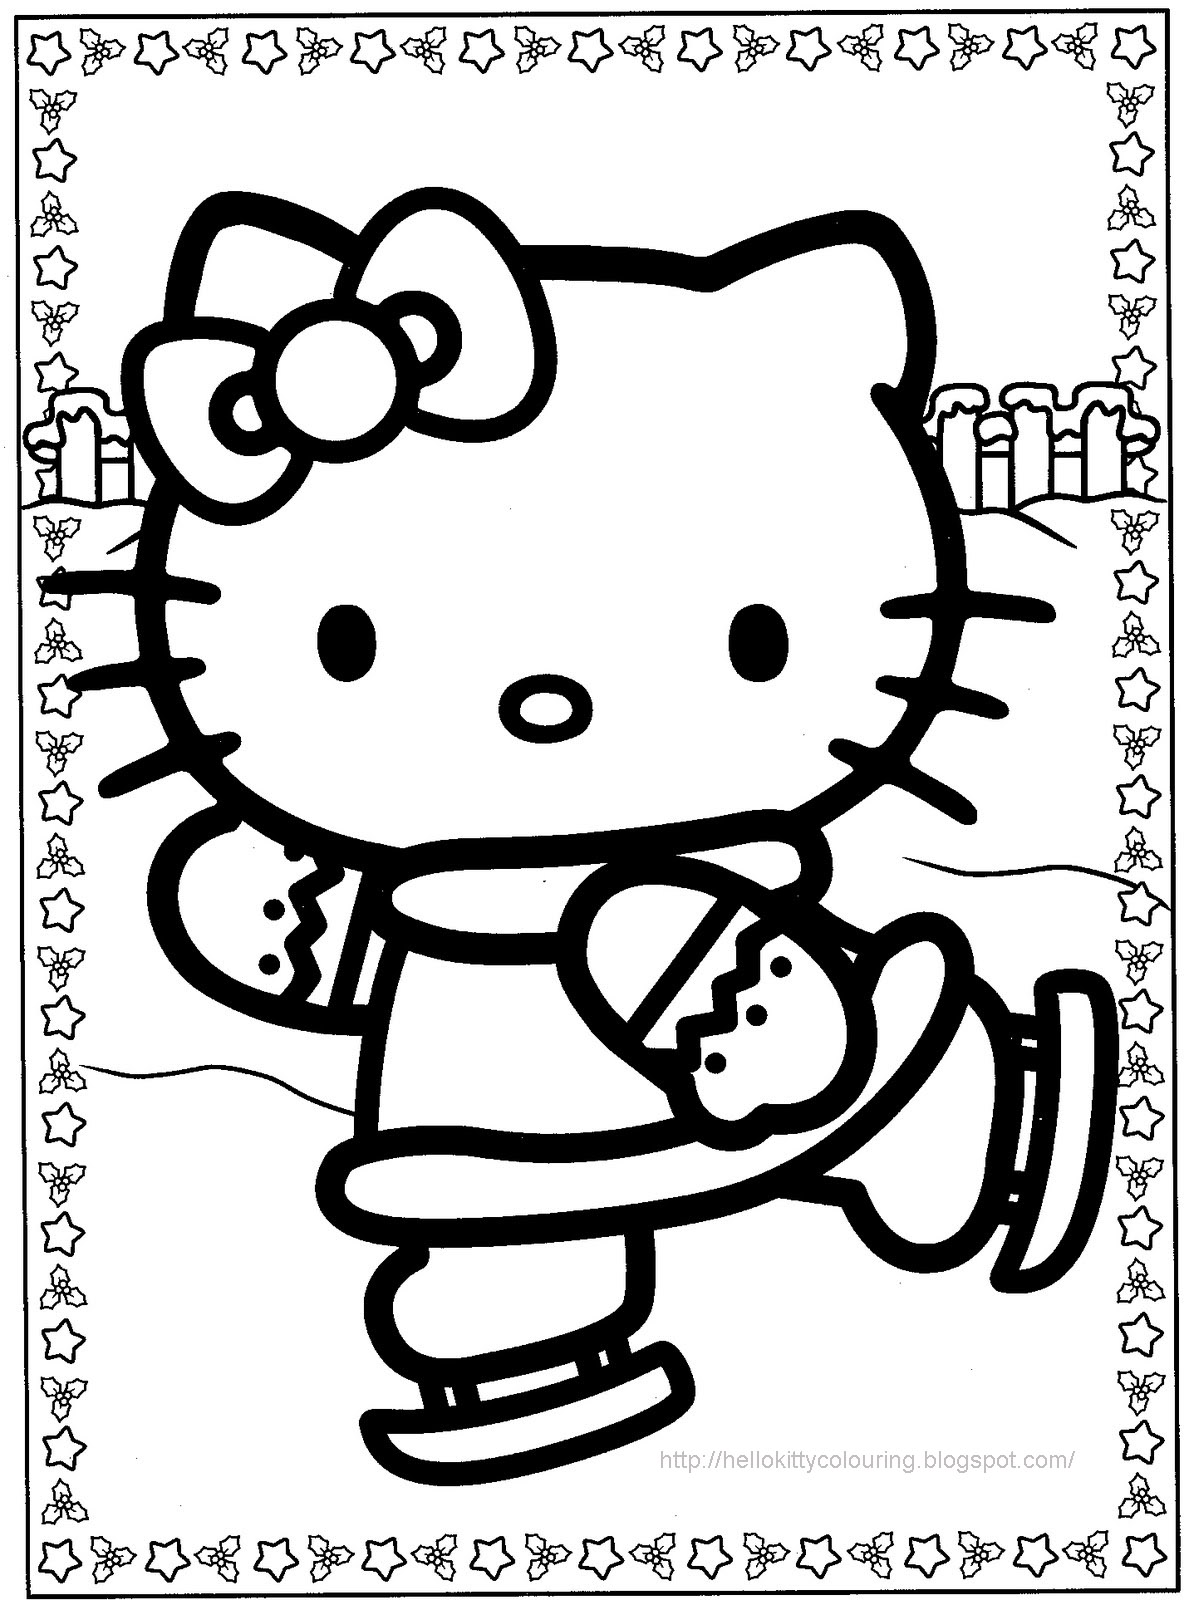 kitty pictures to color hello kitty to color for kids hello kitty kids coloring to color pictures kitty